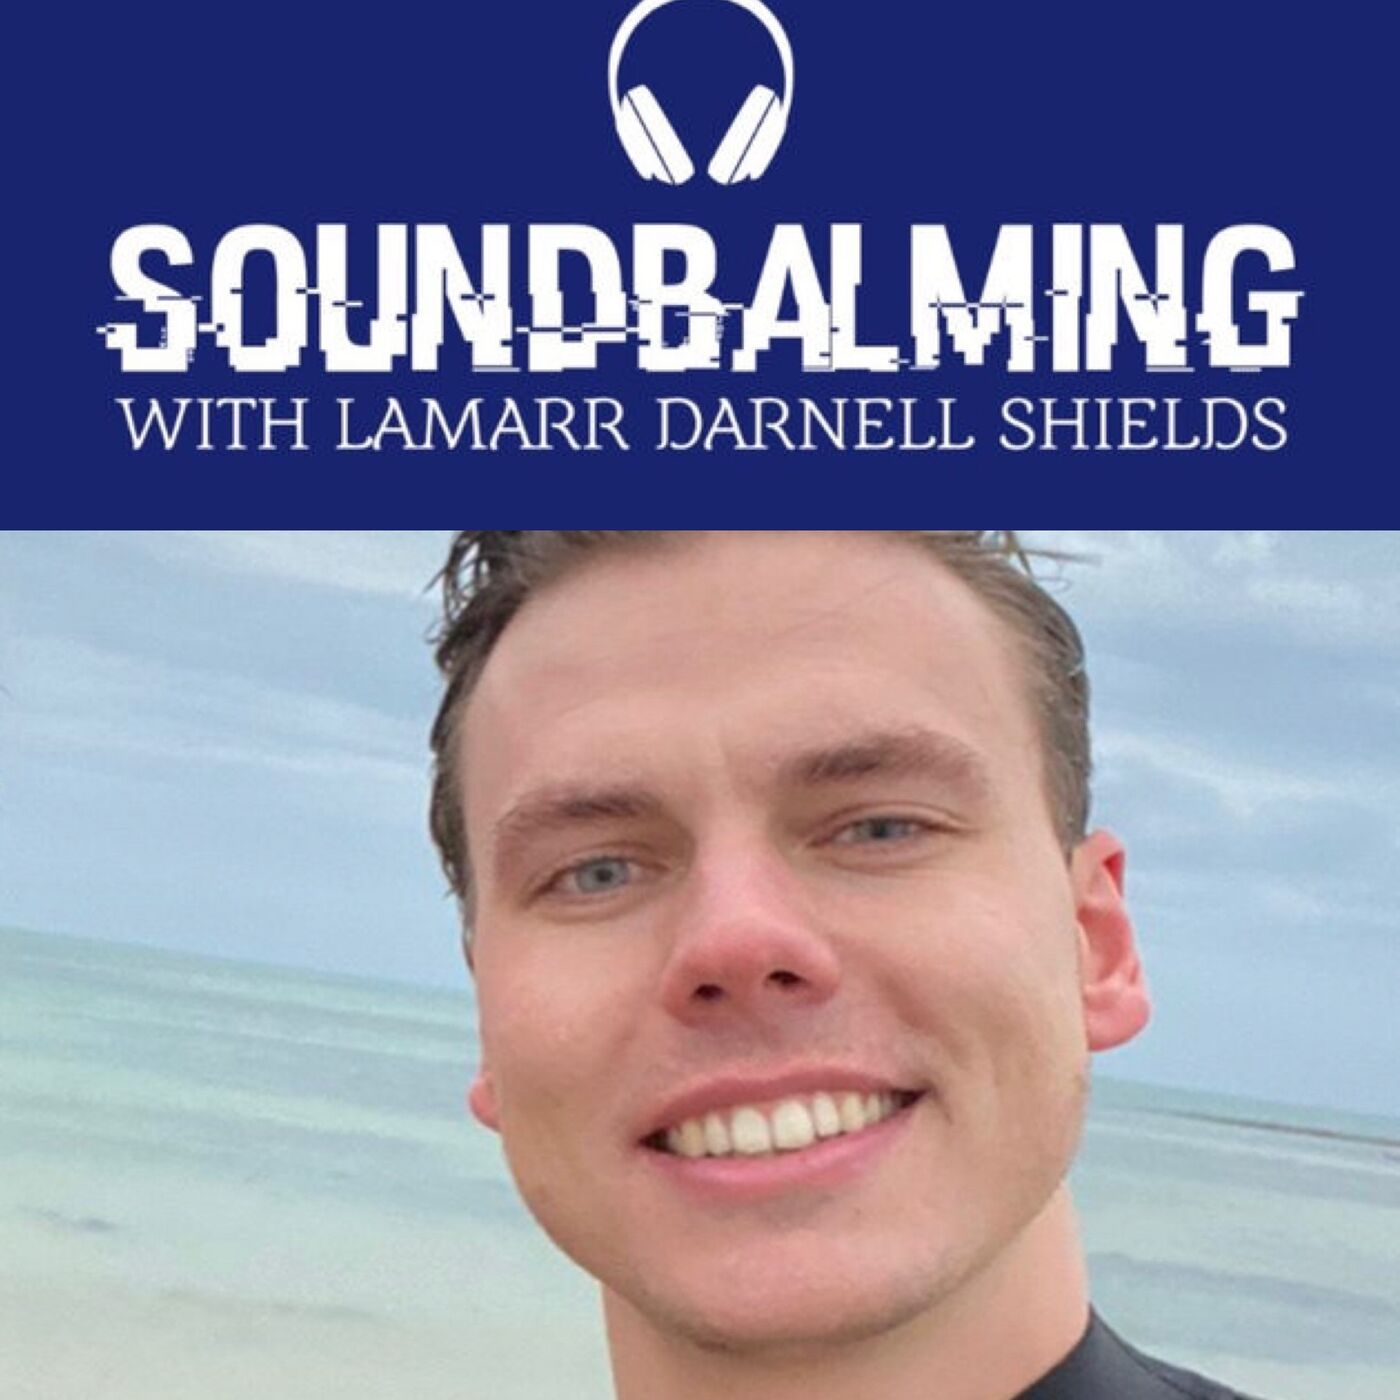 Get Out of Your Heard to Reduce Social Anxiety with Tom Simmons